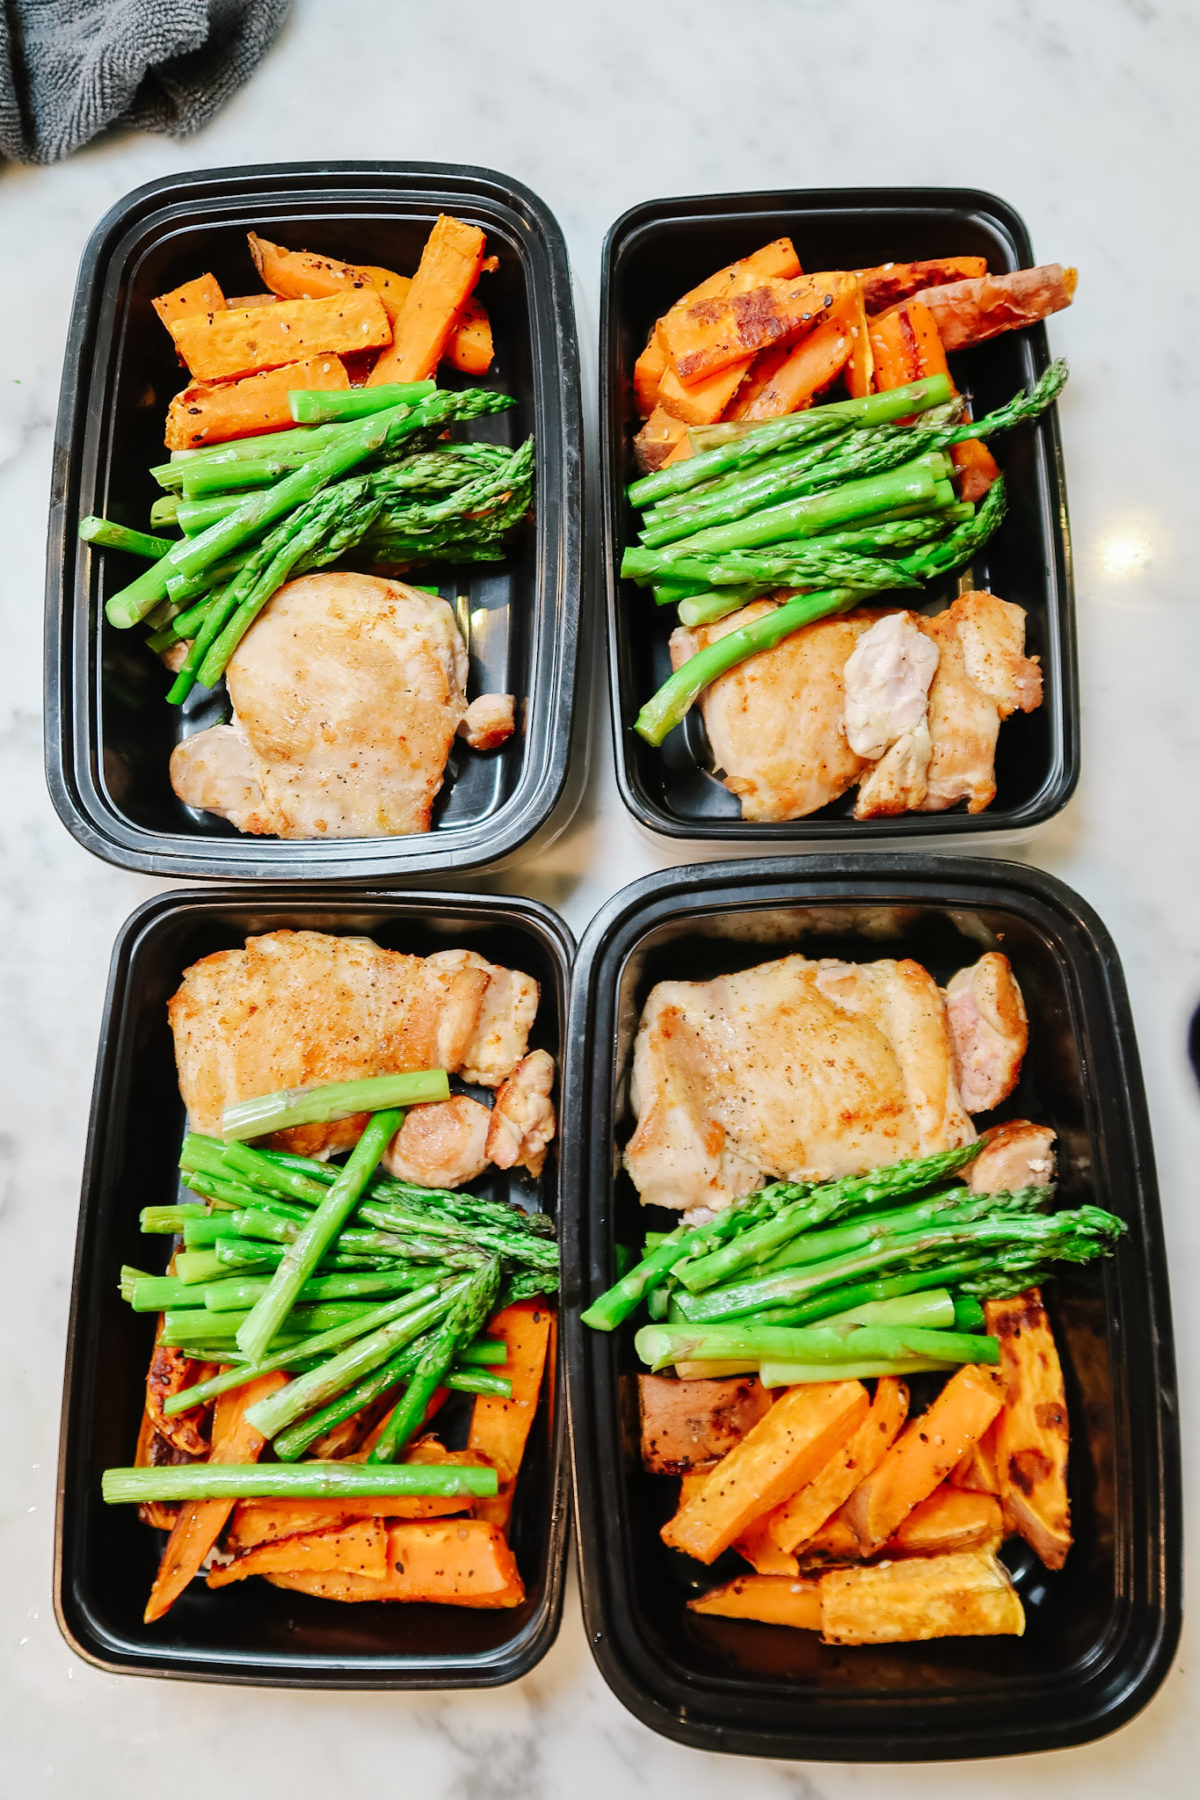 CHICKEN THIGHS WITH ASPARAGUS & SWEET POTATO FRIES